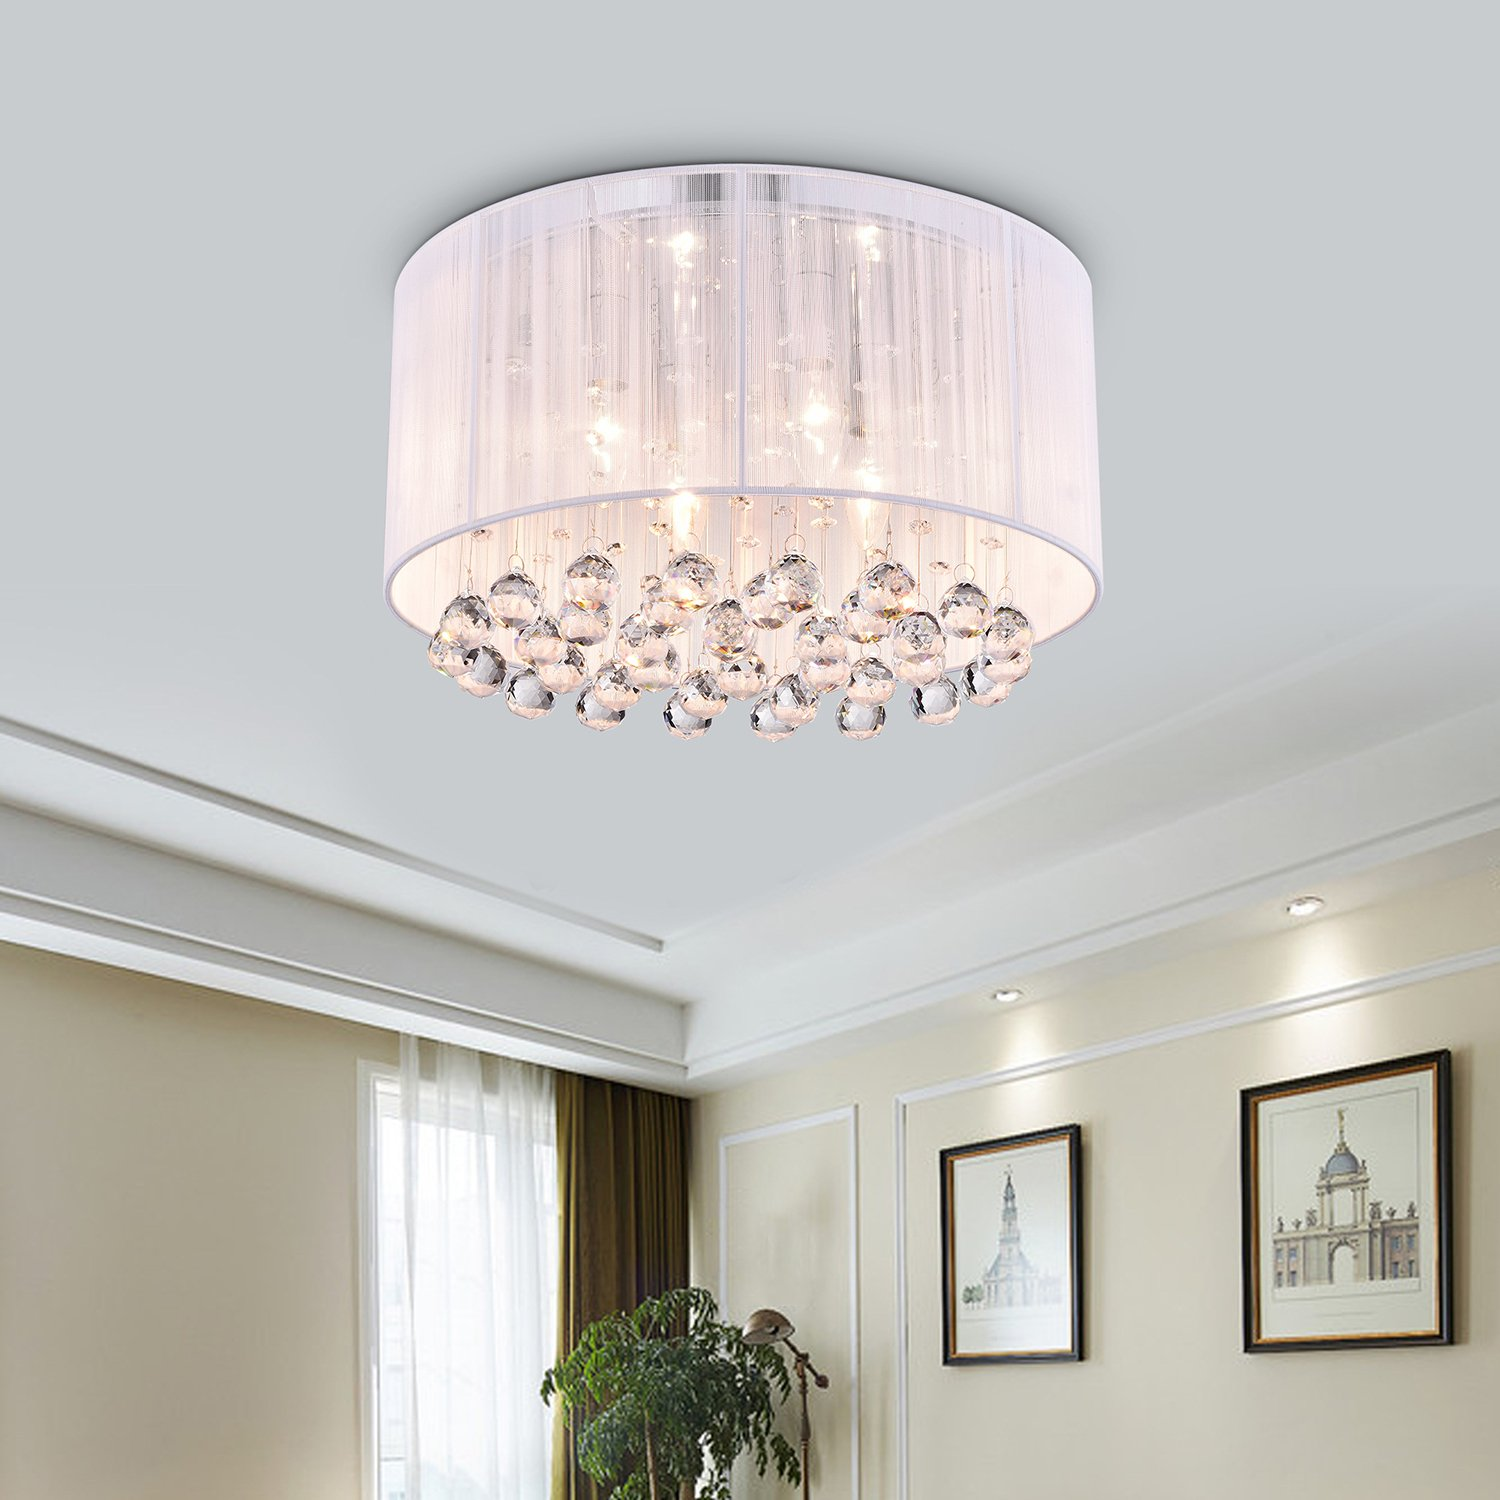 Crystal 4 Light White Drum Shade Chrome Flush Mount Chandelier Ceiling Fixture Com